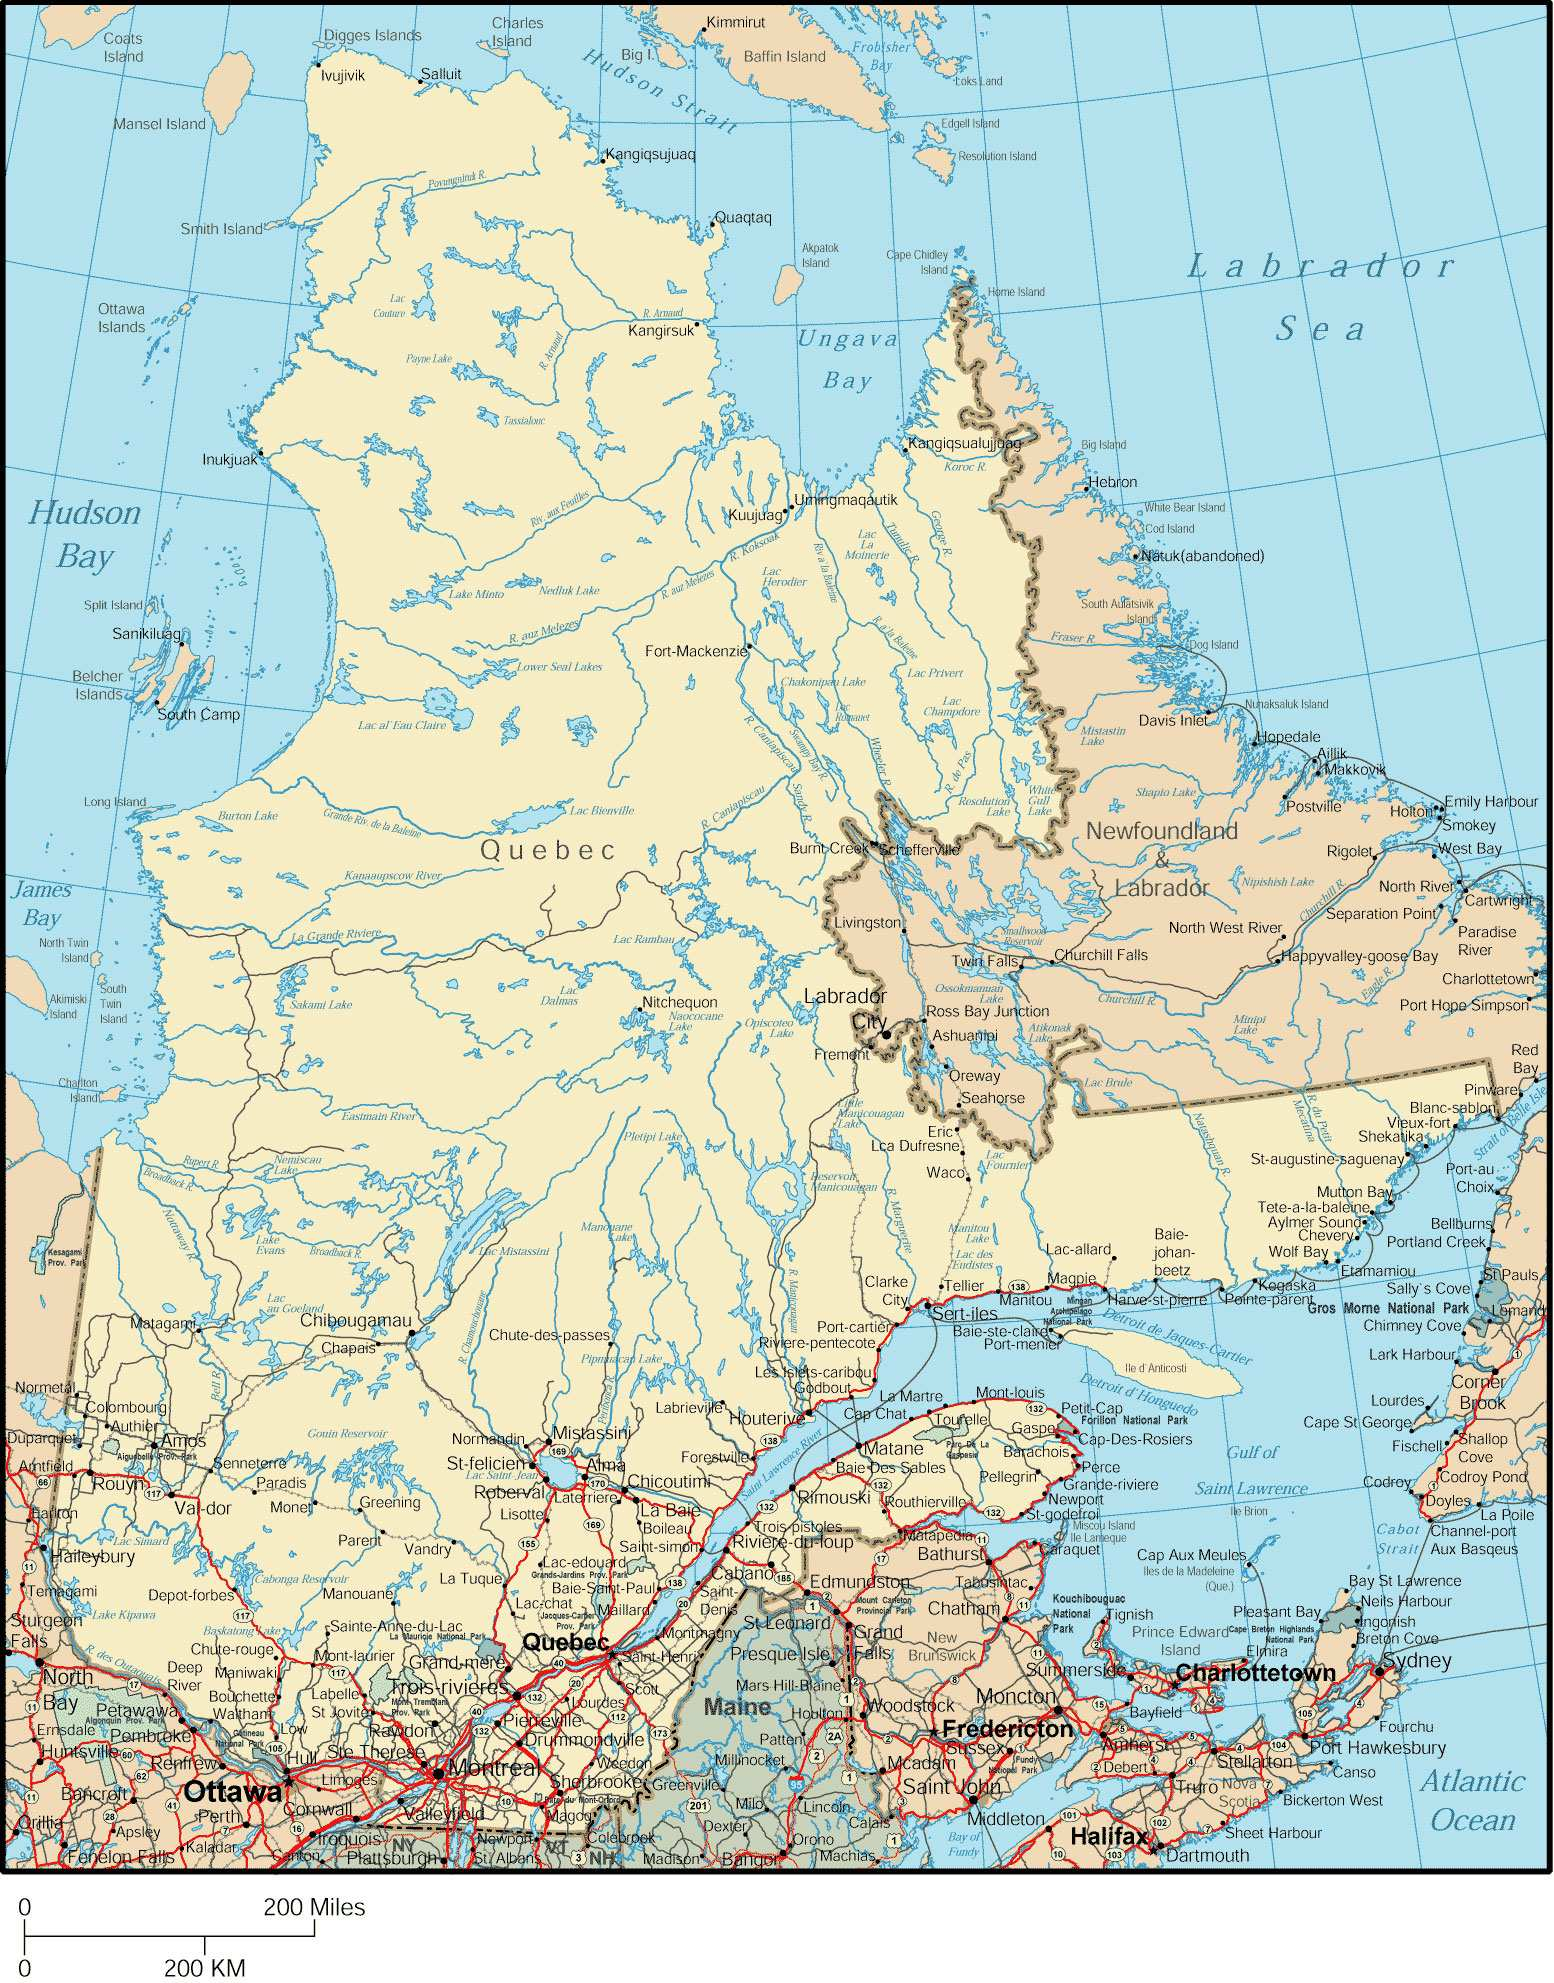 Canada Maps Printable Maps Of Canada For Download - Map of quebec canada